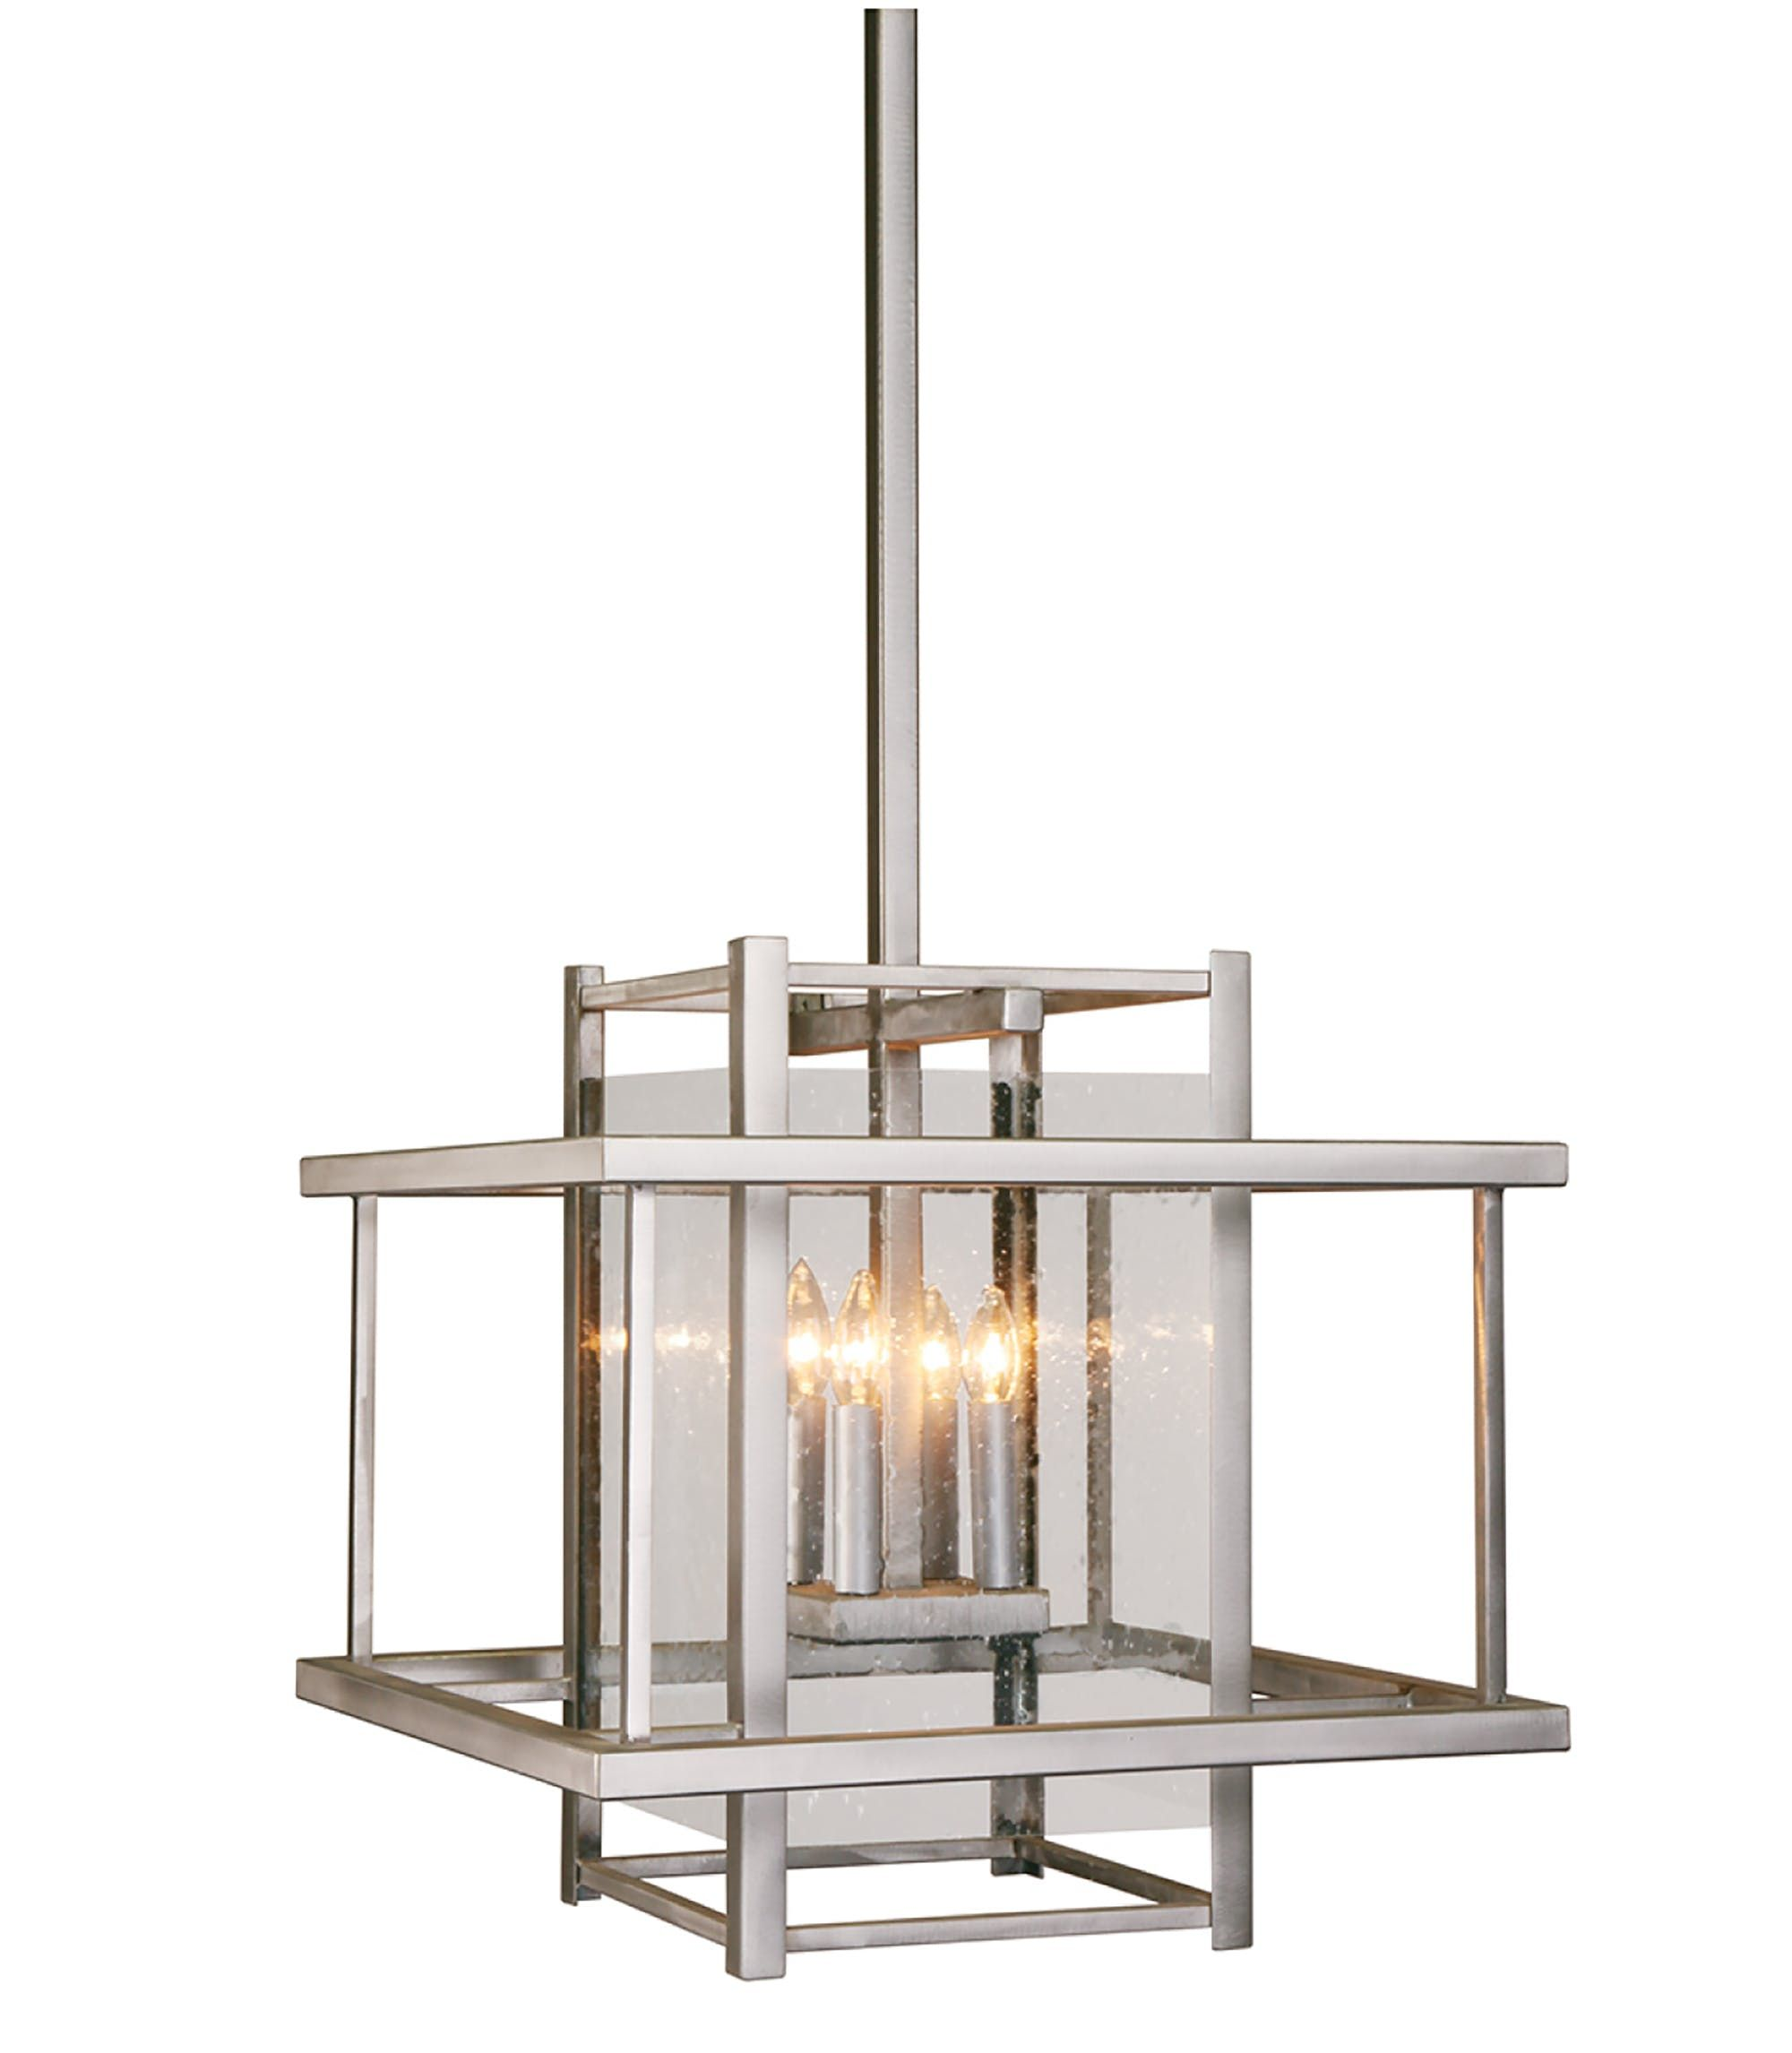 Wright Chandelier Contemporary Transitional Glass Metal Chandelier By Hammerton Contemporary Light Fixtures Transitional Style Decor Contemporary Decor